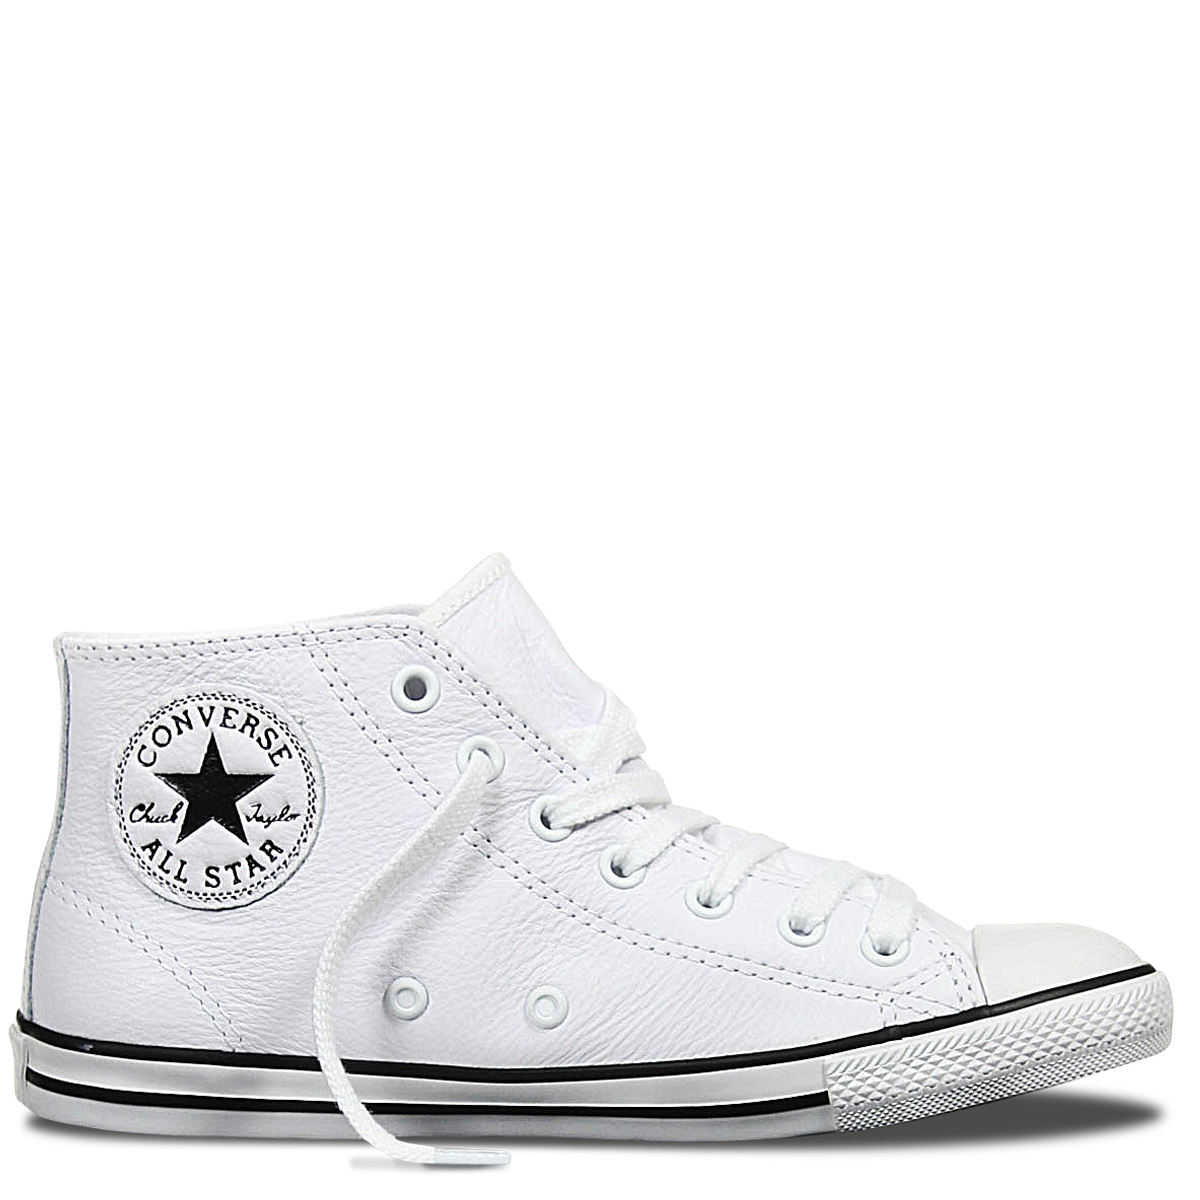 e3a57a1203e7 Chuck Taylor All Star Dainty Leather Mid White